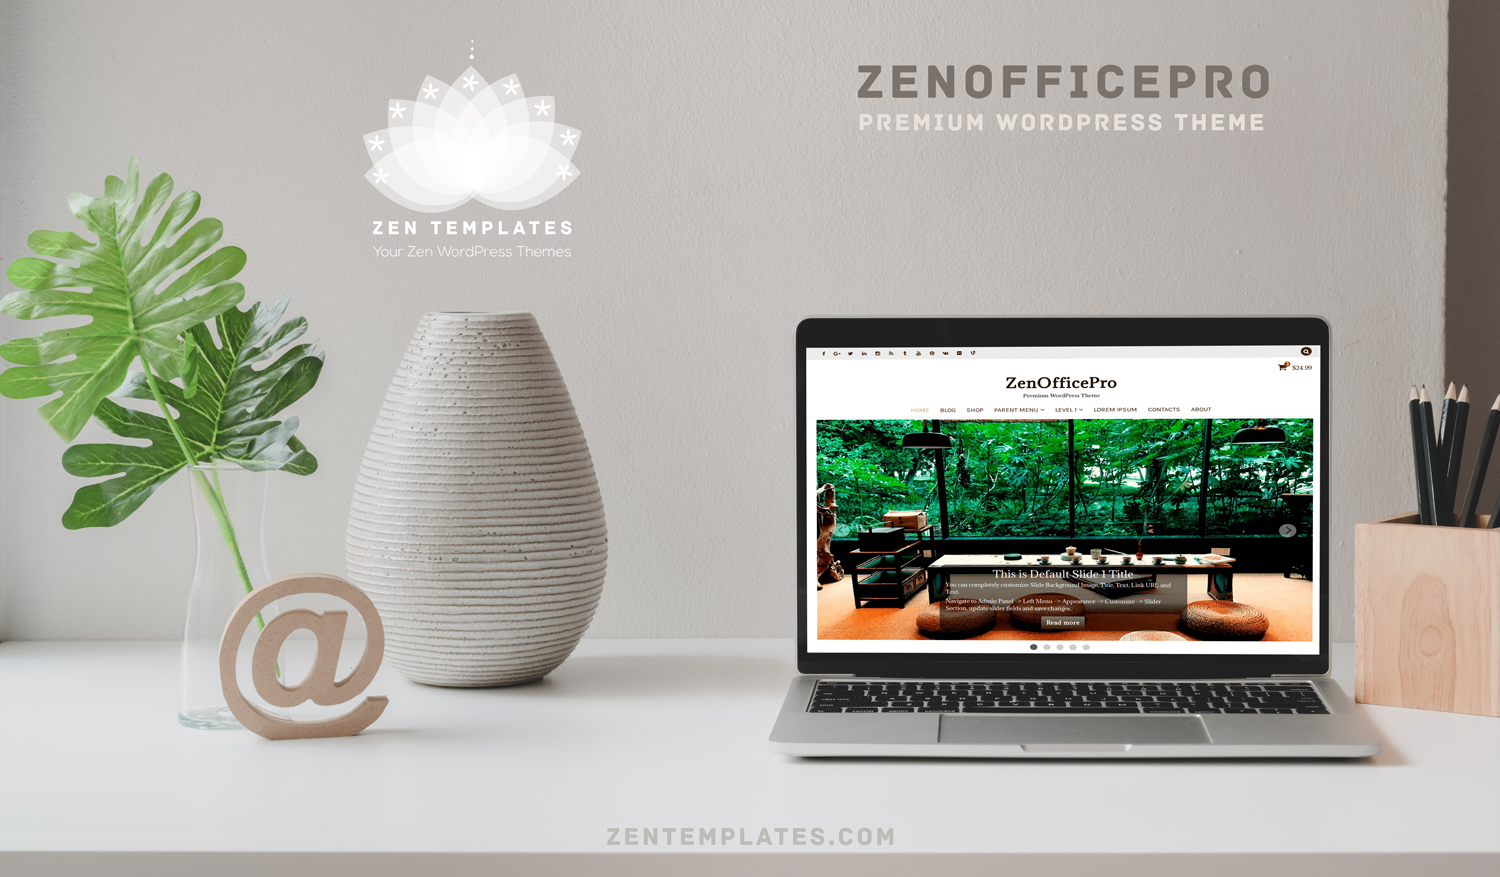 zenofficepro-premium-wordpress-theme-mockup-zentemplates